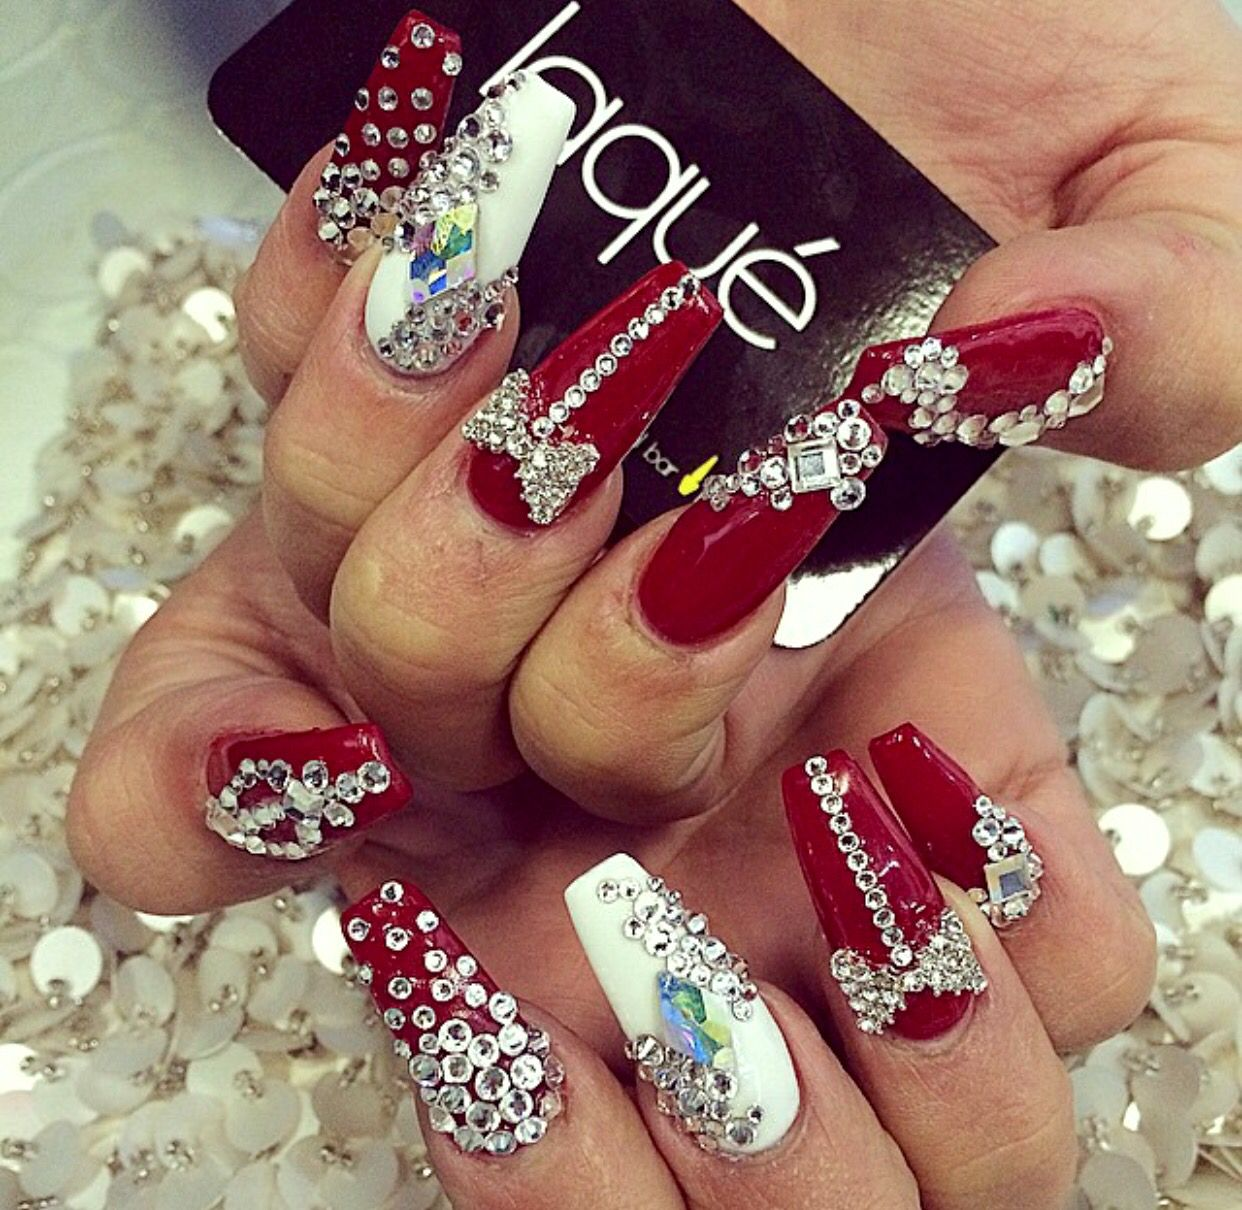 Red And White Coffin Design With Gems And Bows Bling Nails Red And Silver Nails Cute Acrylic Nails